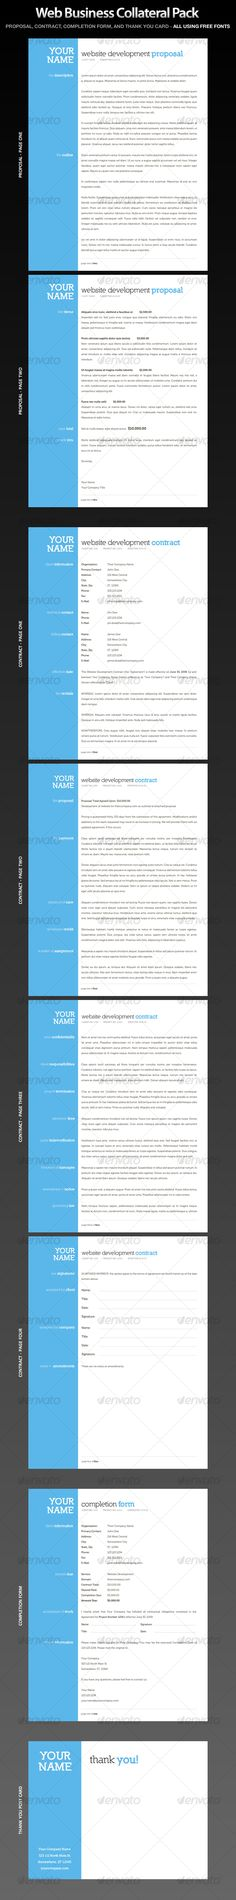 GD Real Proposal 01 + Invoice + Contract Invoice template - contract proposal